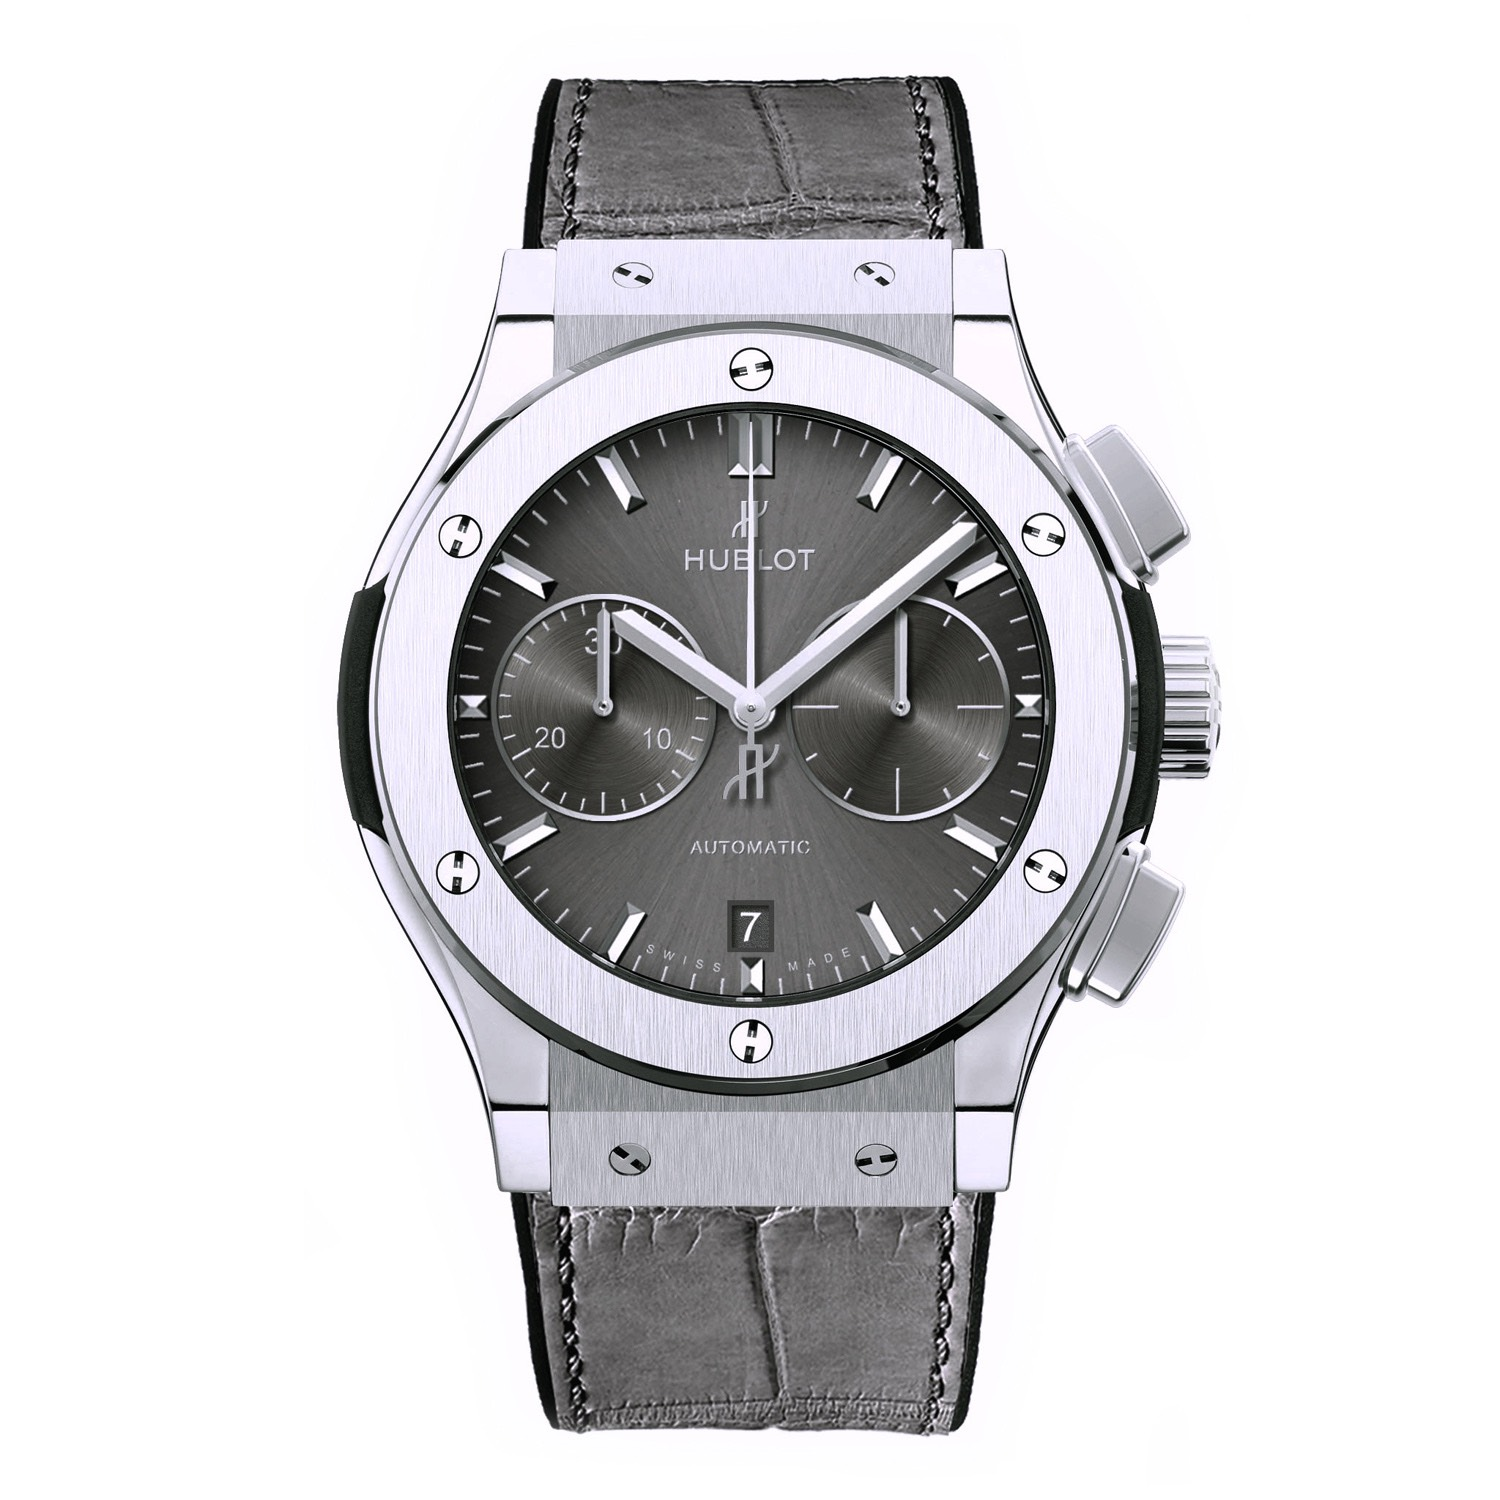 Hublot Silver Black Watch